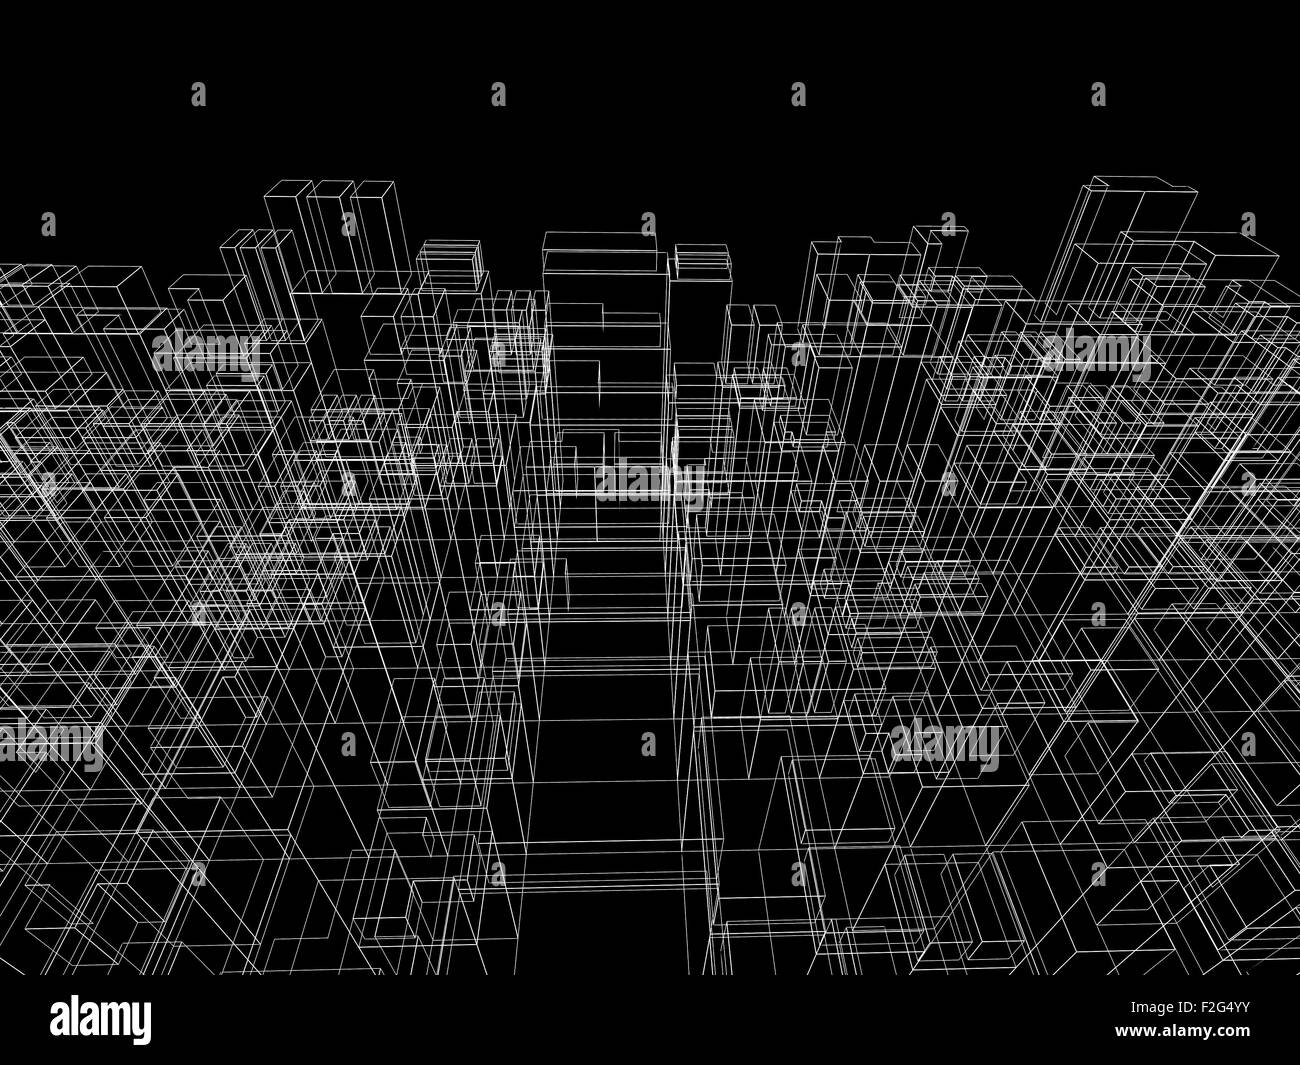 3d Cube Live Wallpaper Free Download Digital Background With Cubic 3d Structure White Wire